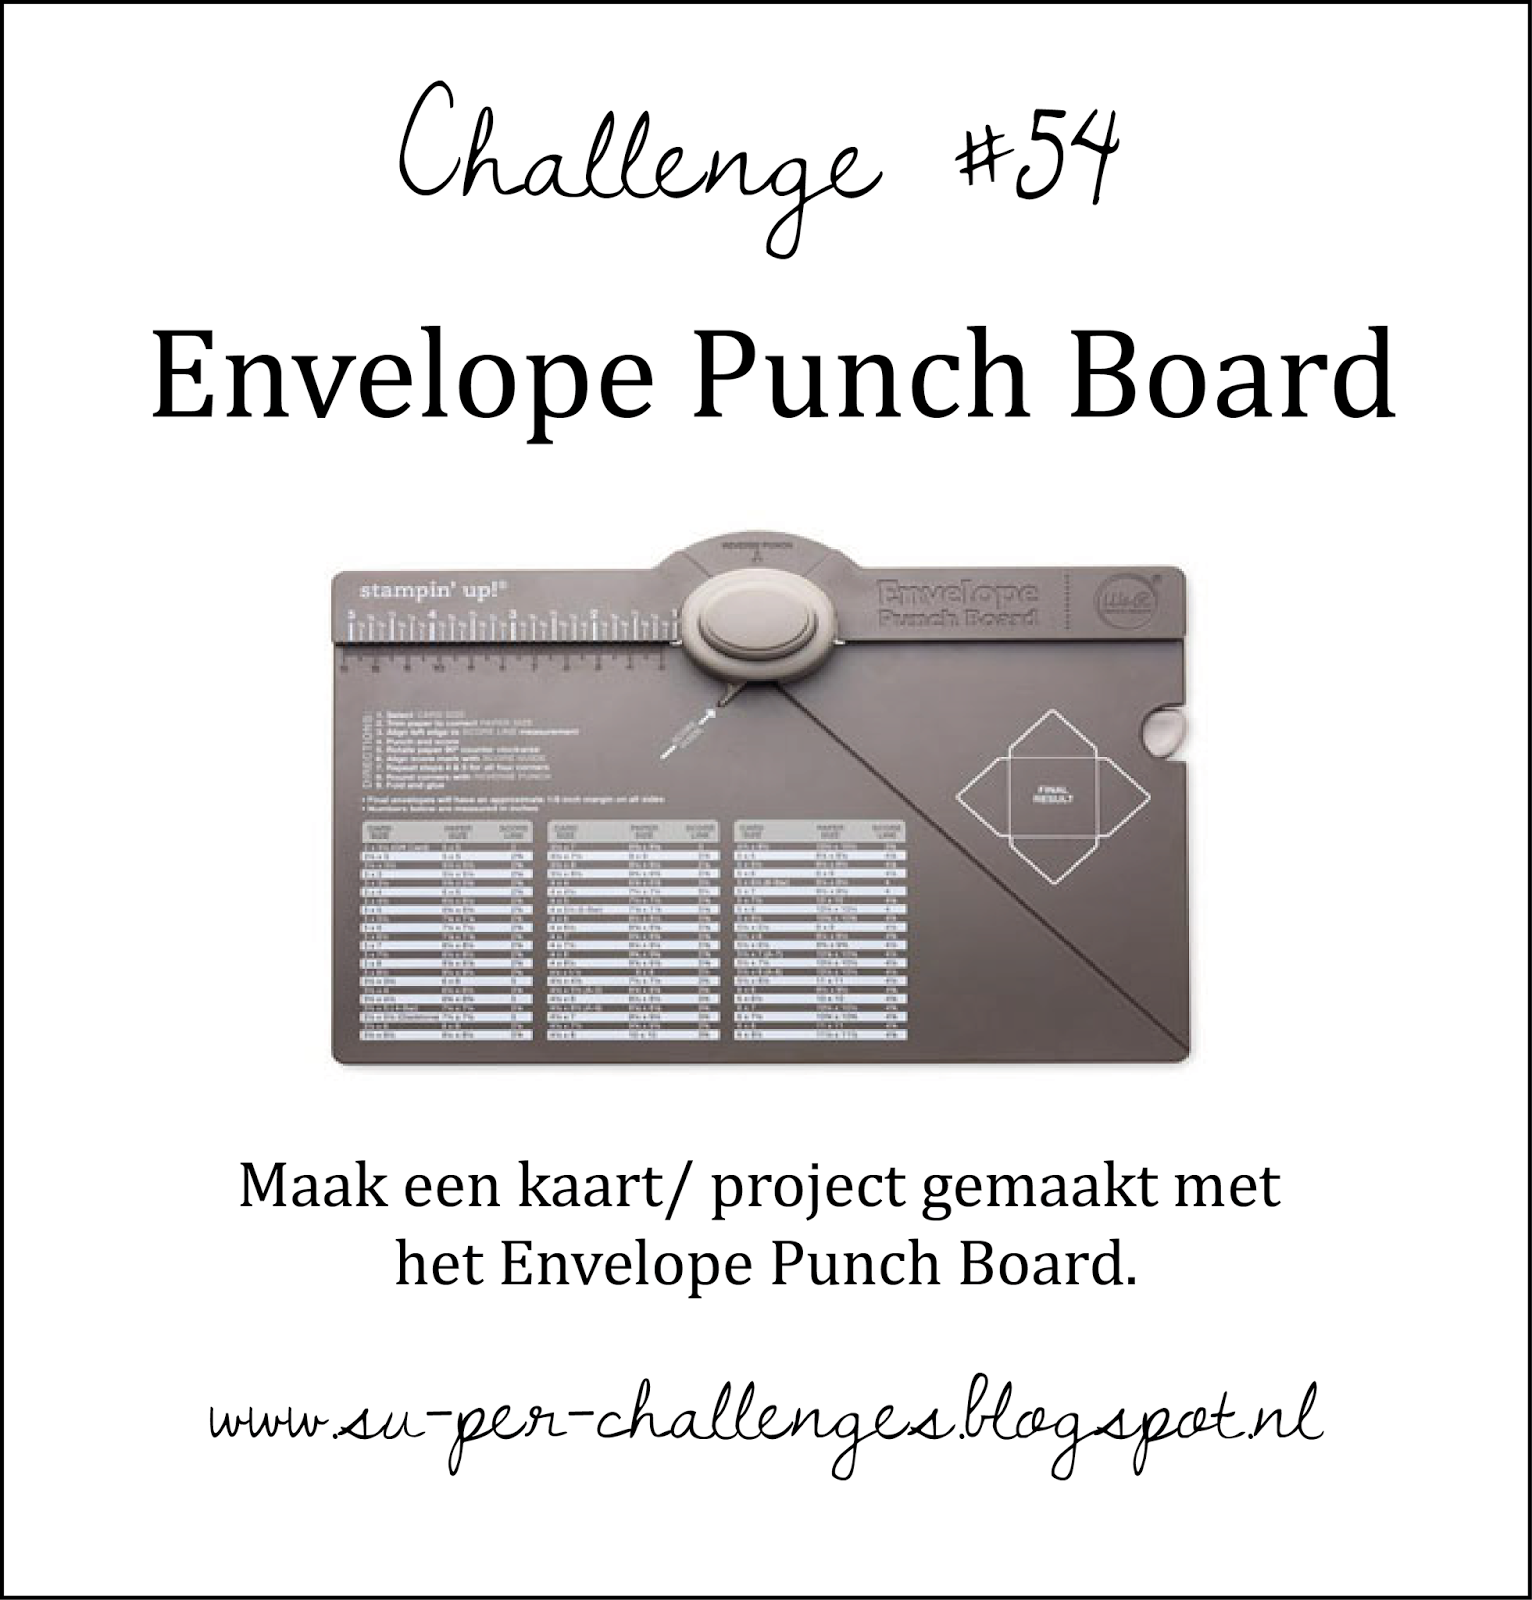 http://su-per-challenges.blogspot.nl/2014/09/challenge-54-thema-envelope-punch-board.html